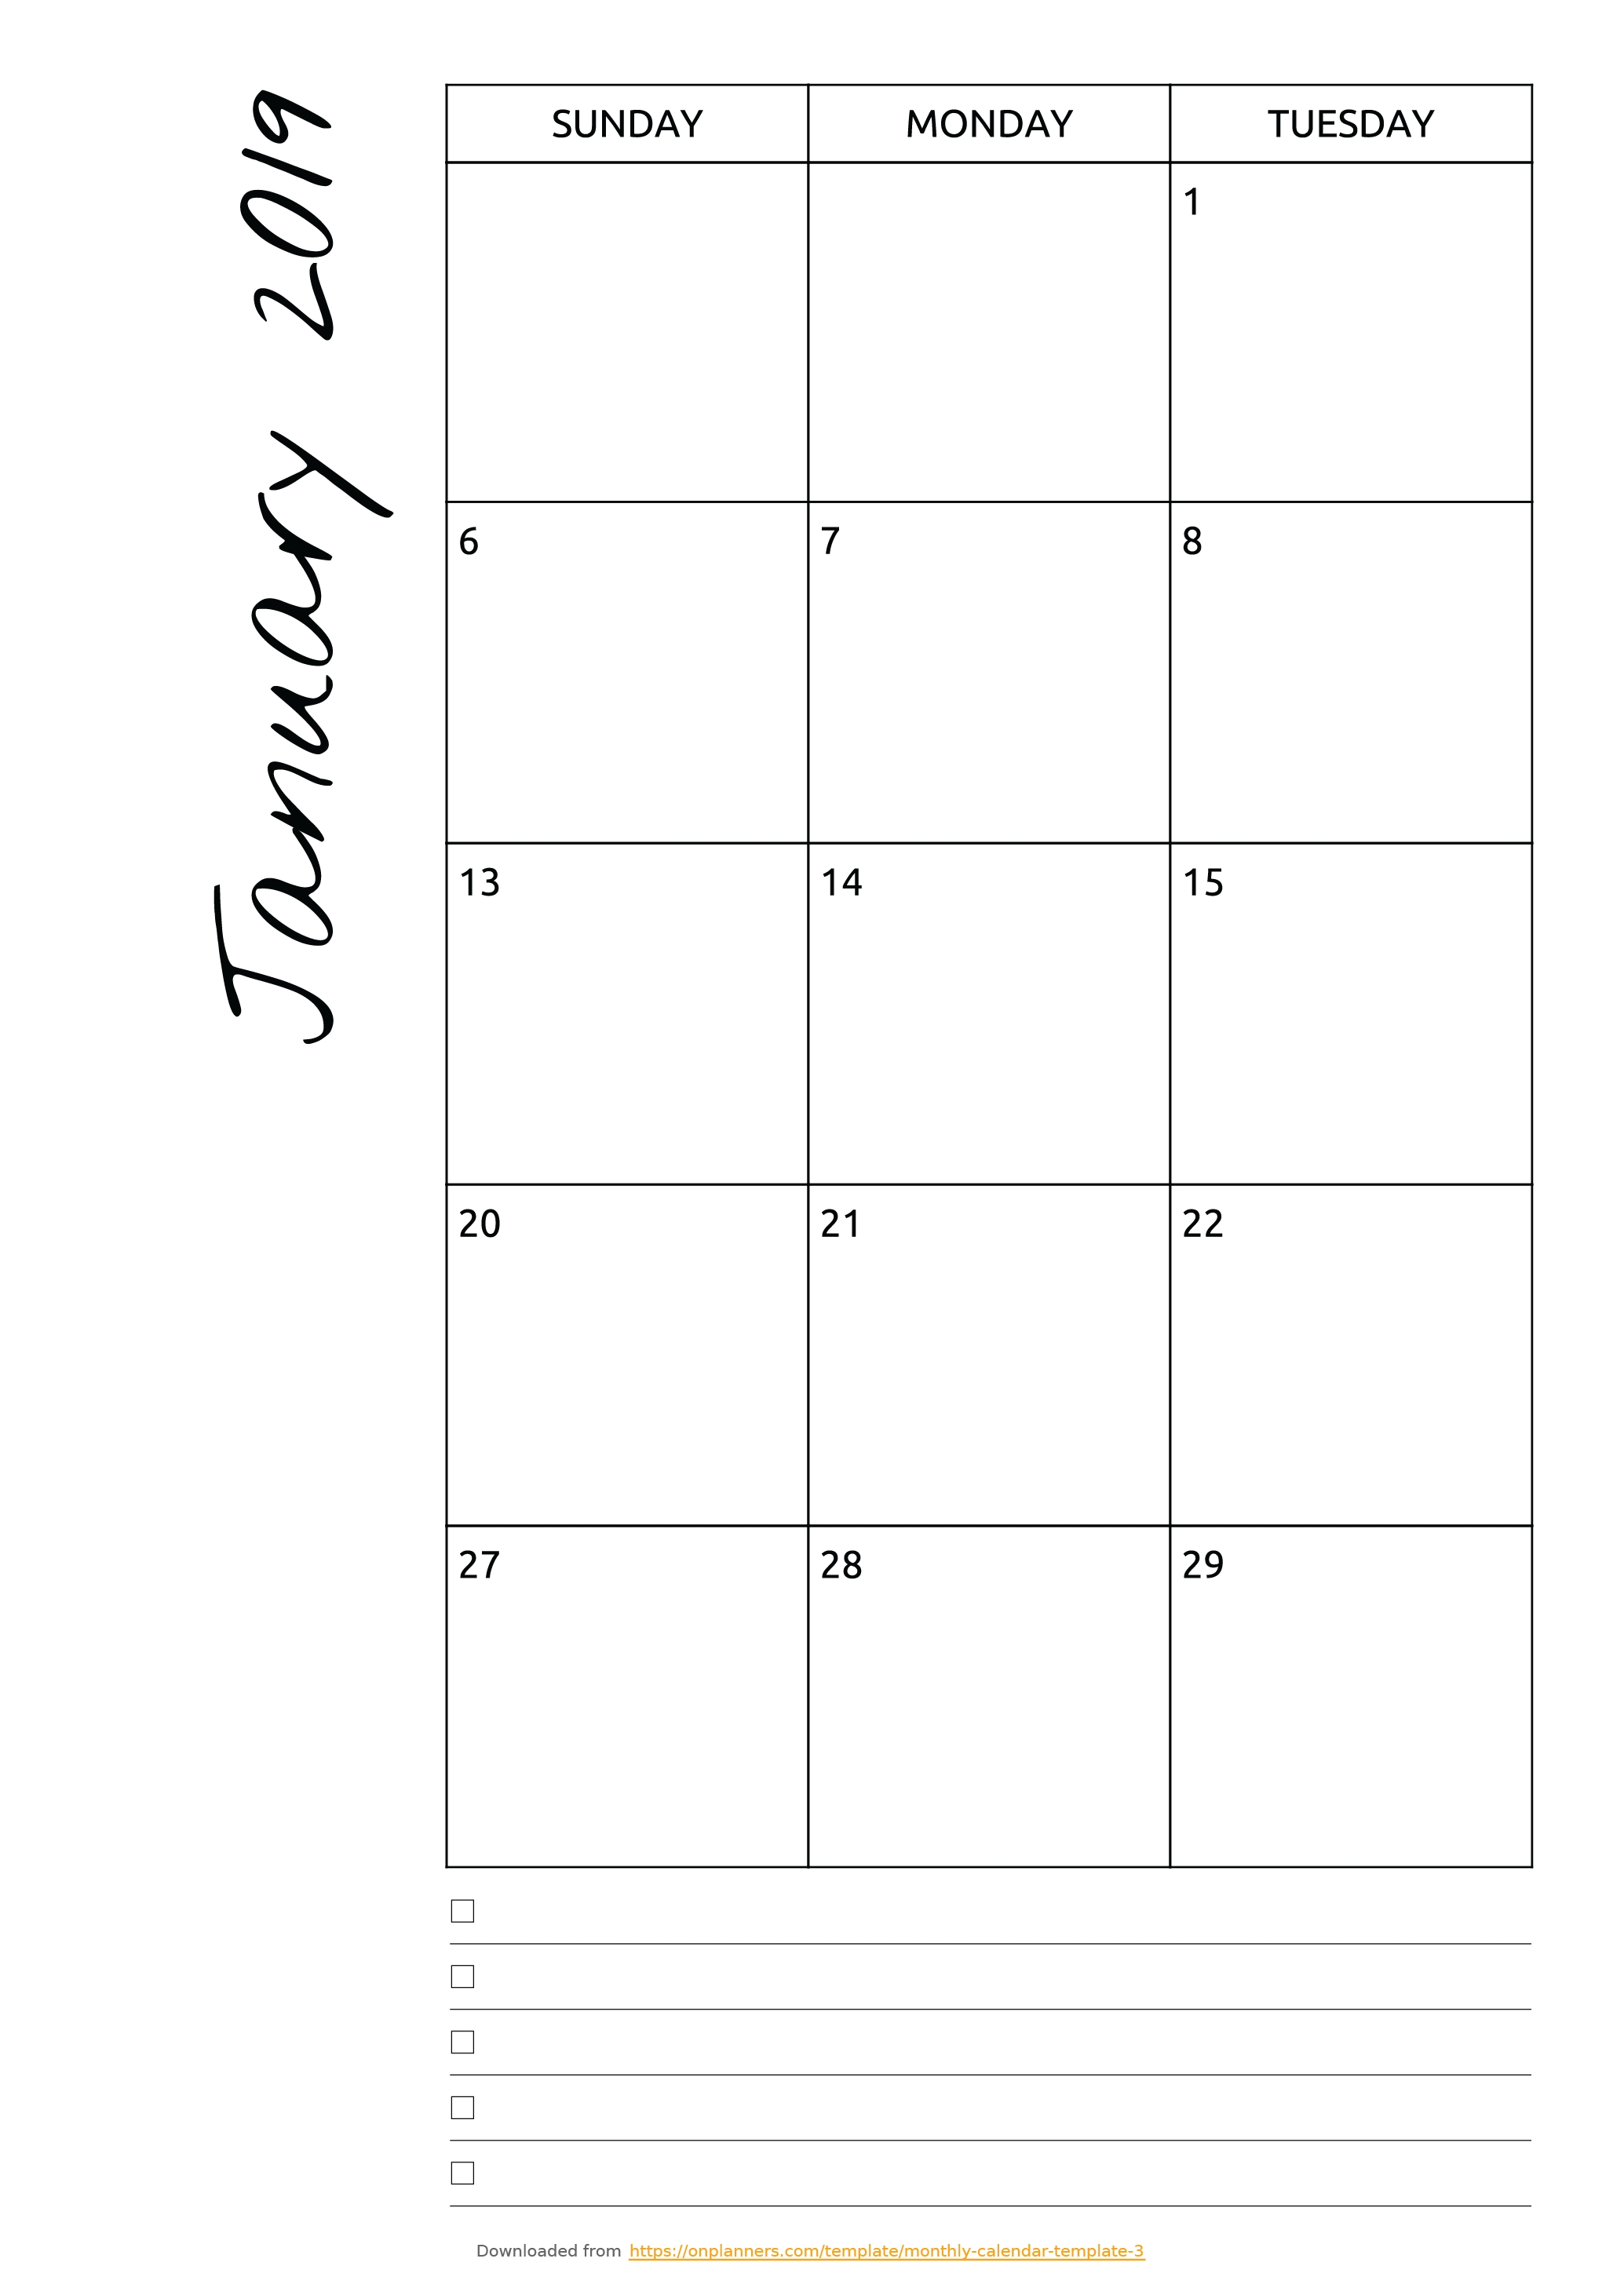 Free Printable Monthly Calendar With Notes Pdf Download with Blank Printable Calendar By Month With Notes